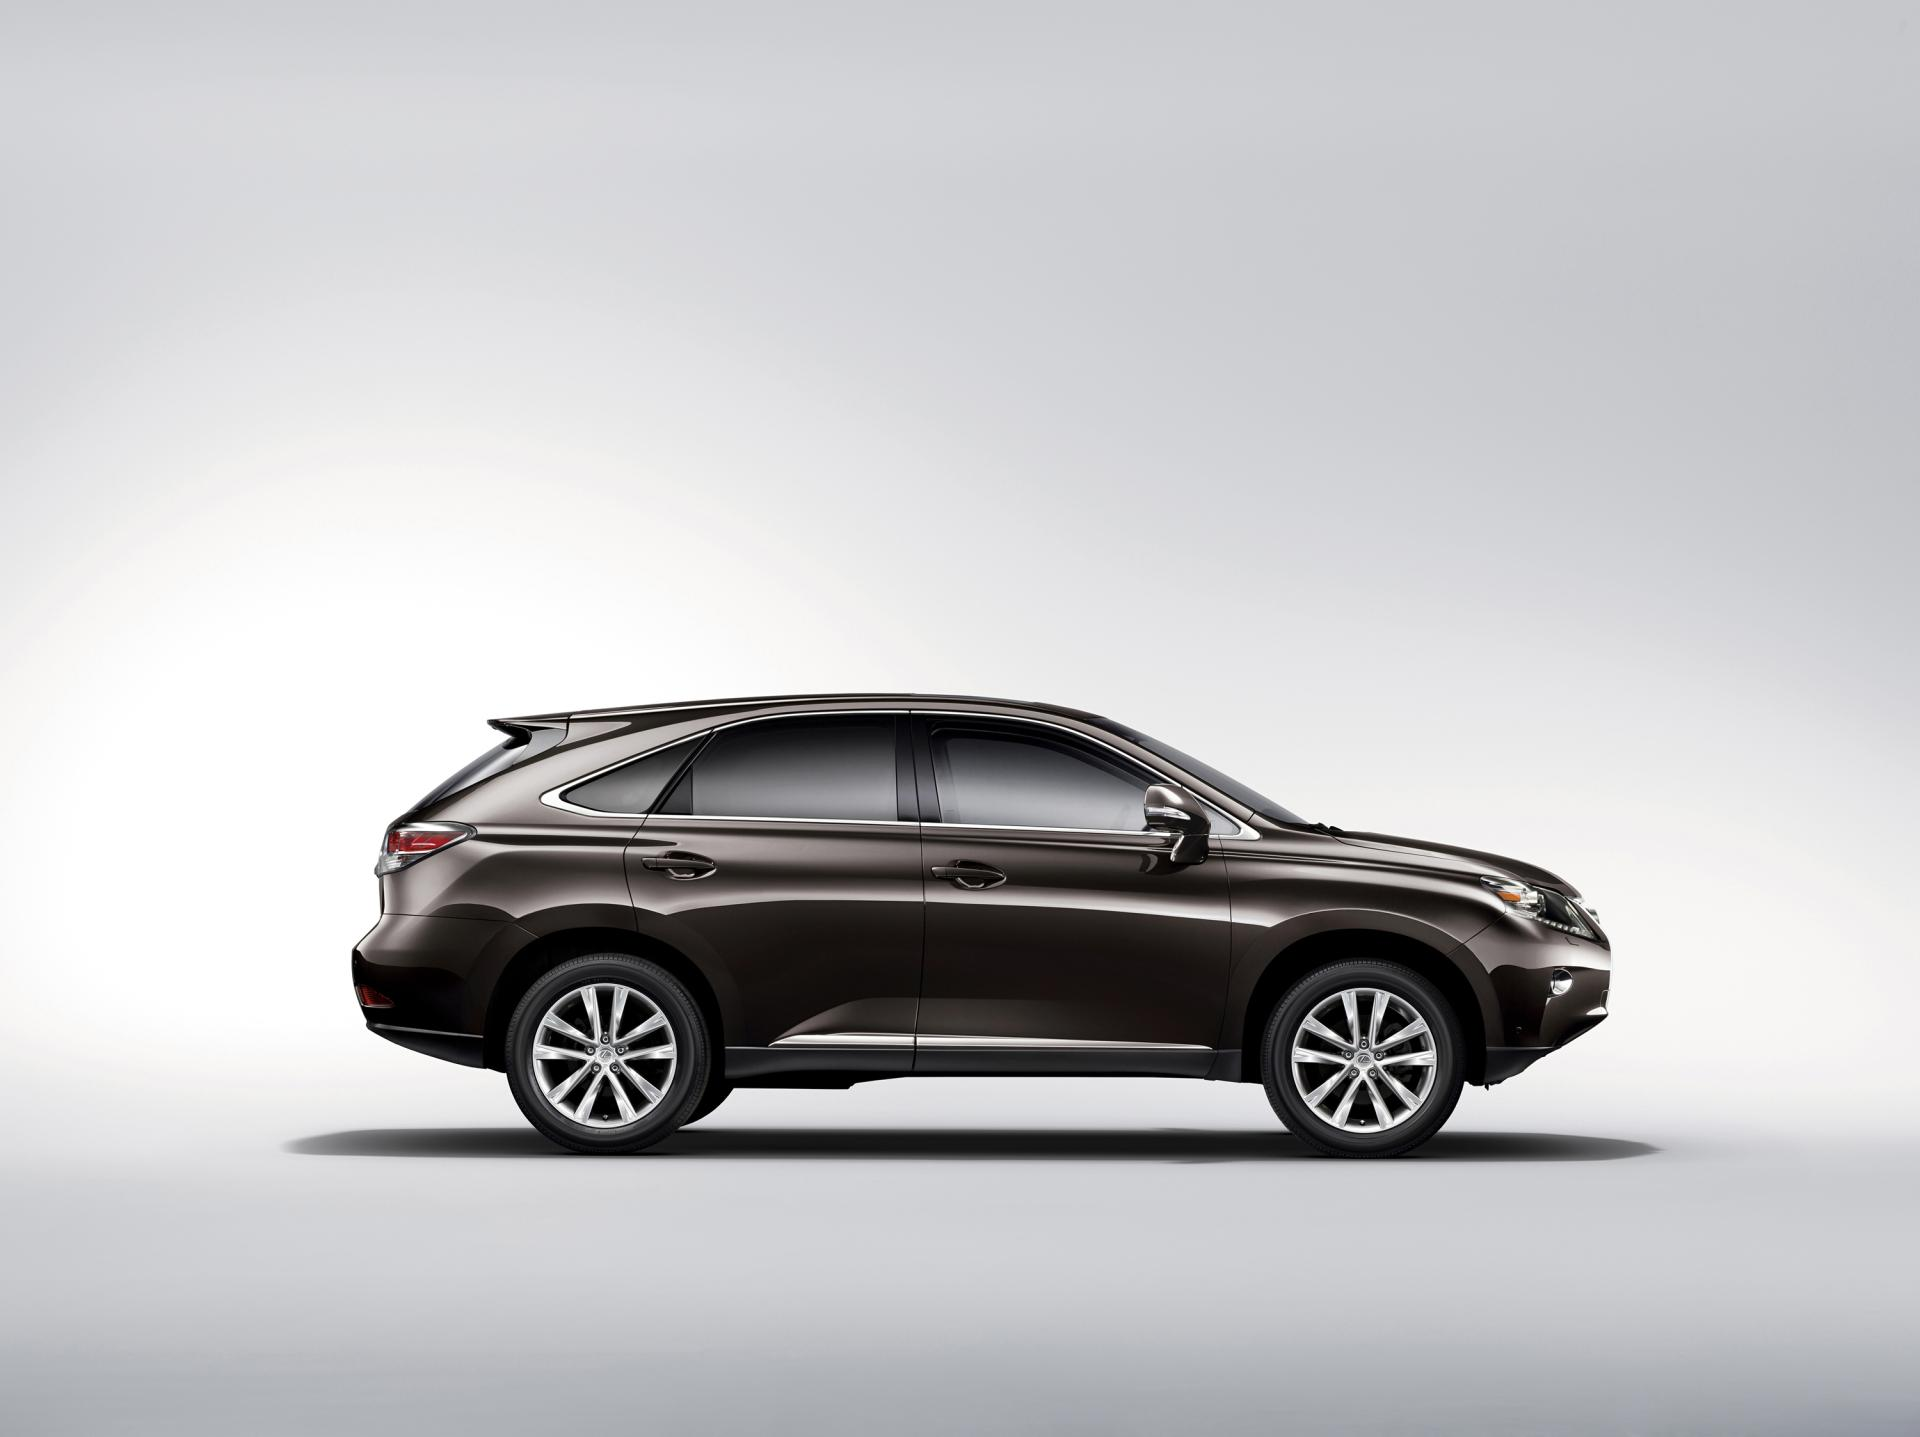 2013 Lexus RX 350 Technical Specifications and data Engine